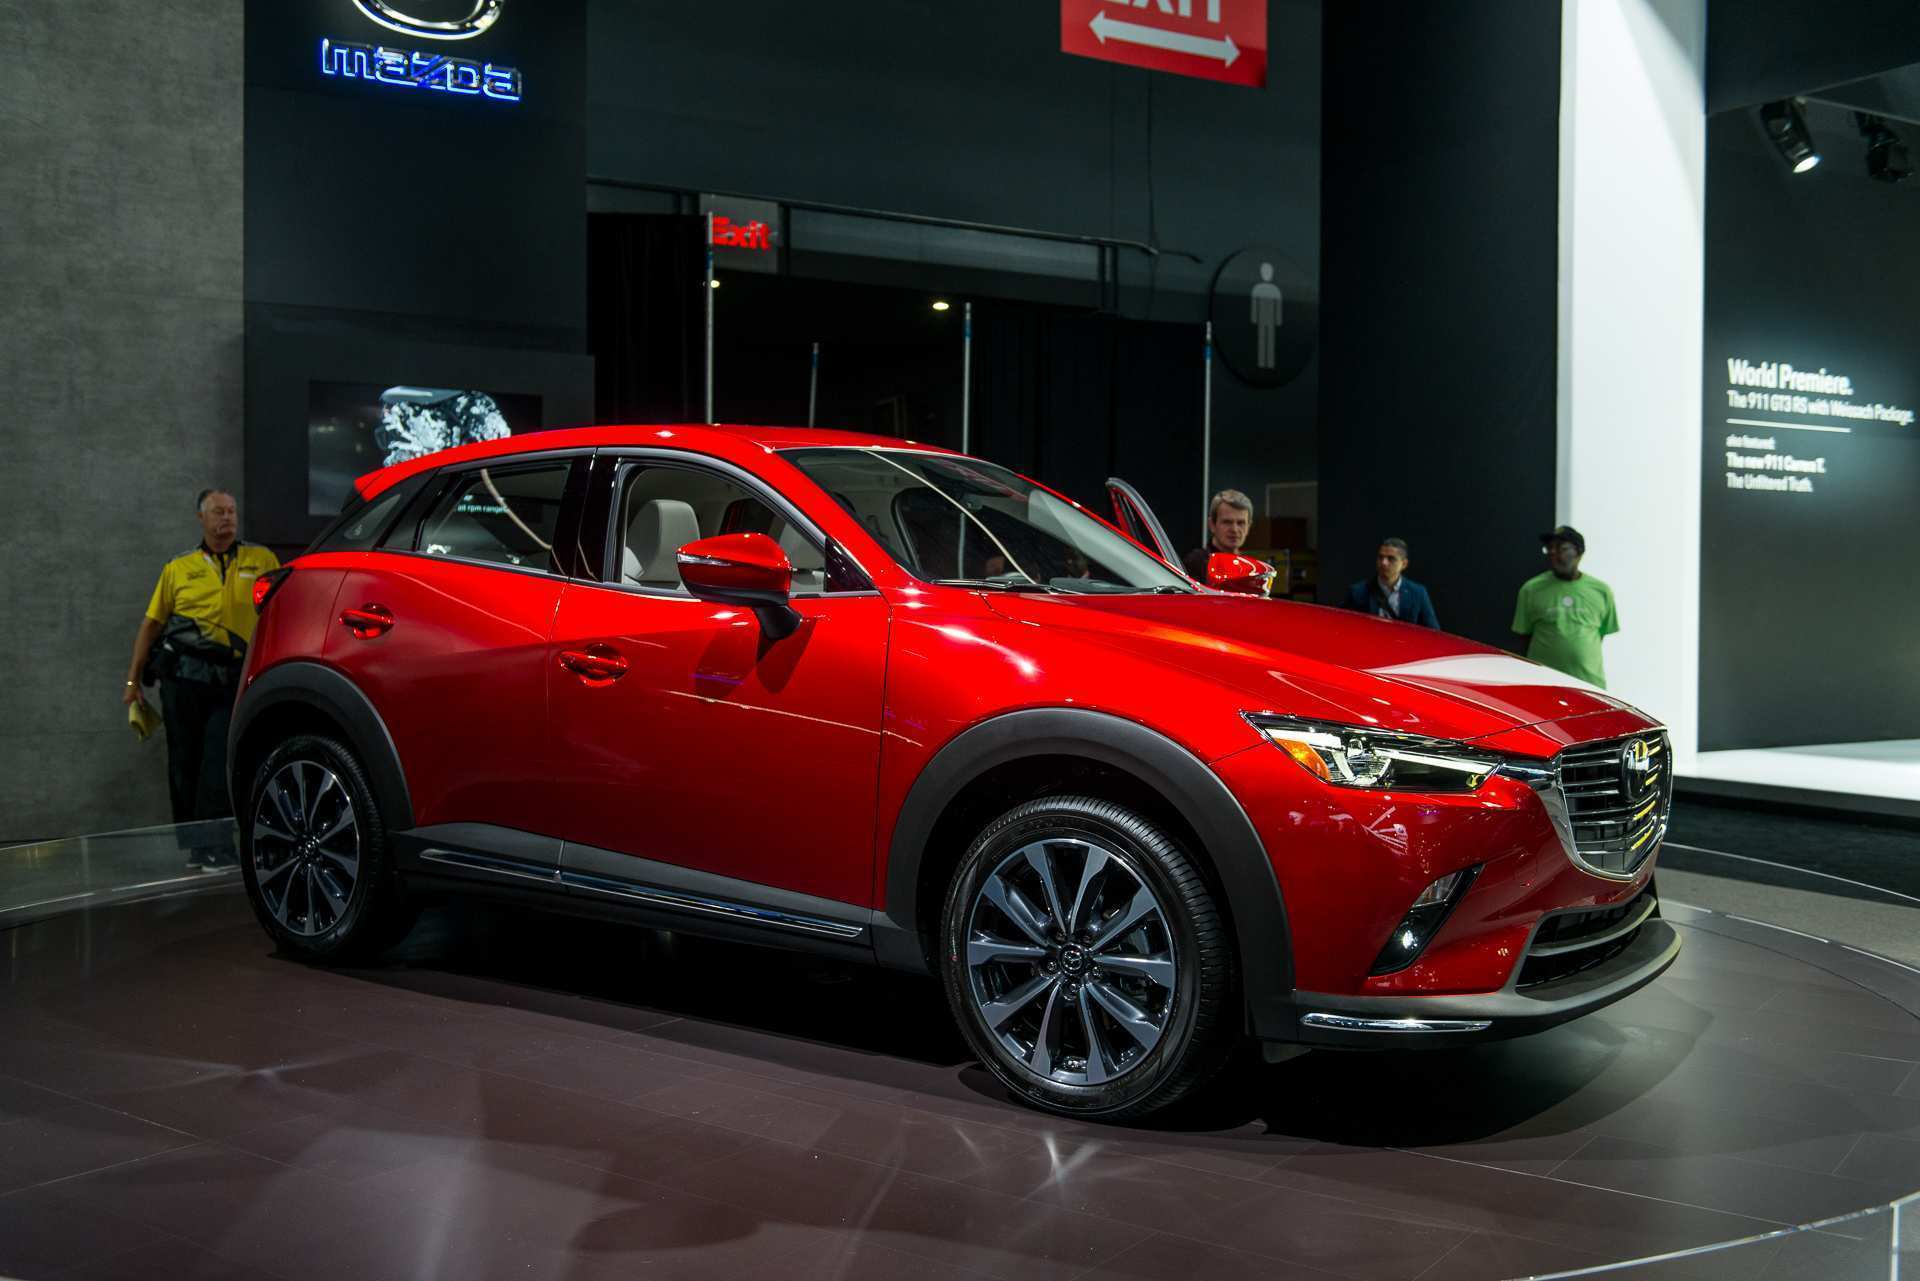 92 Concept of 2020 Mazda Cx 3 Release Date with 2020 Mazda Cx 3